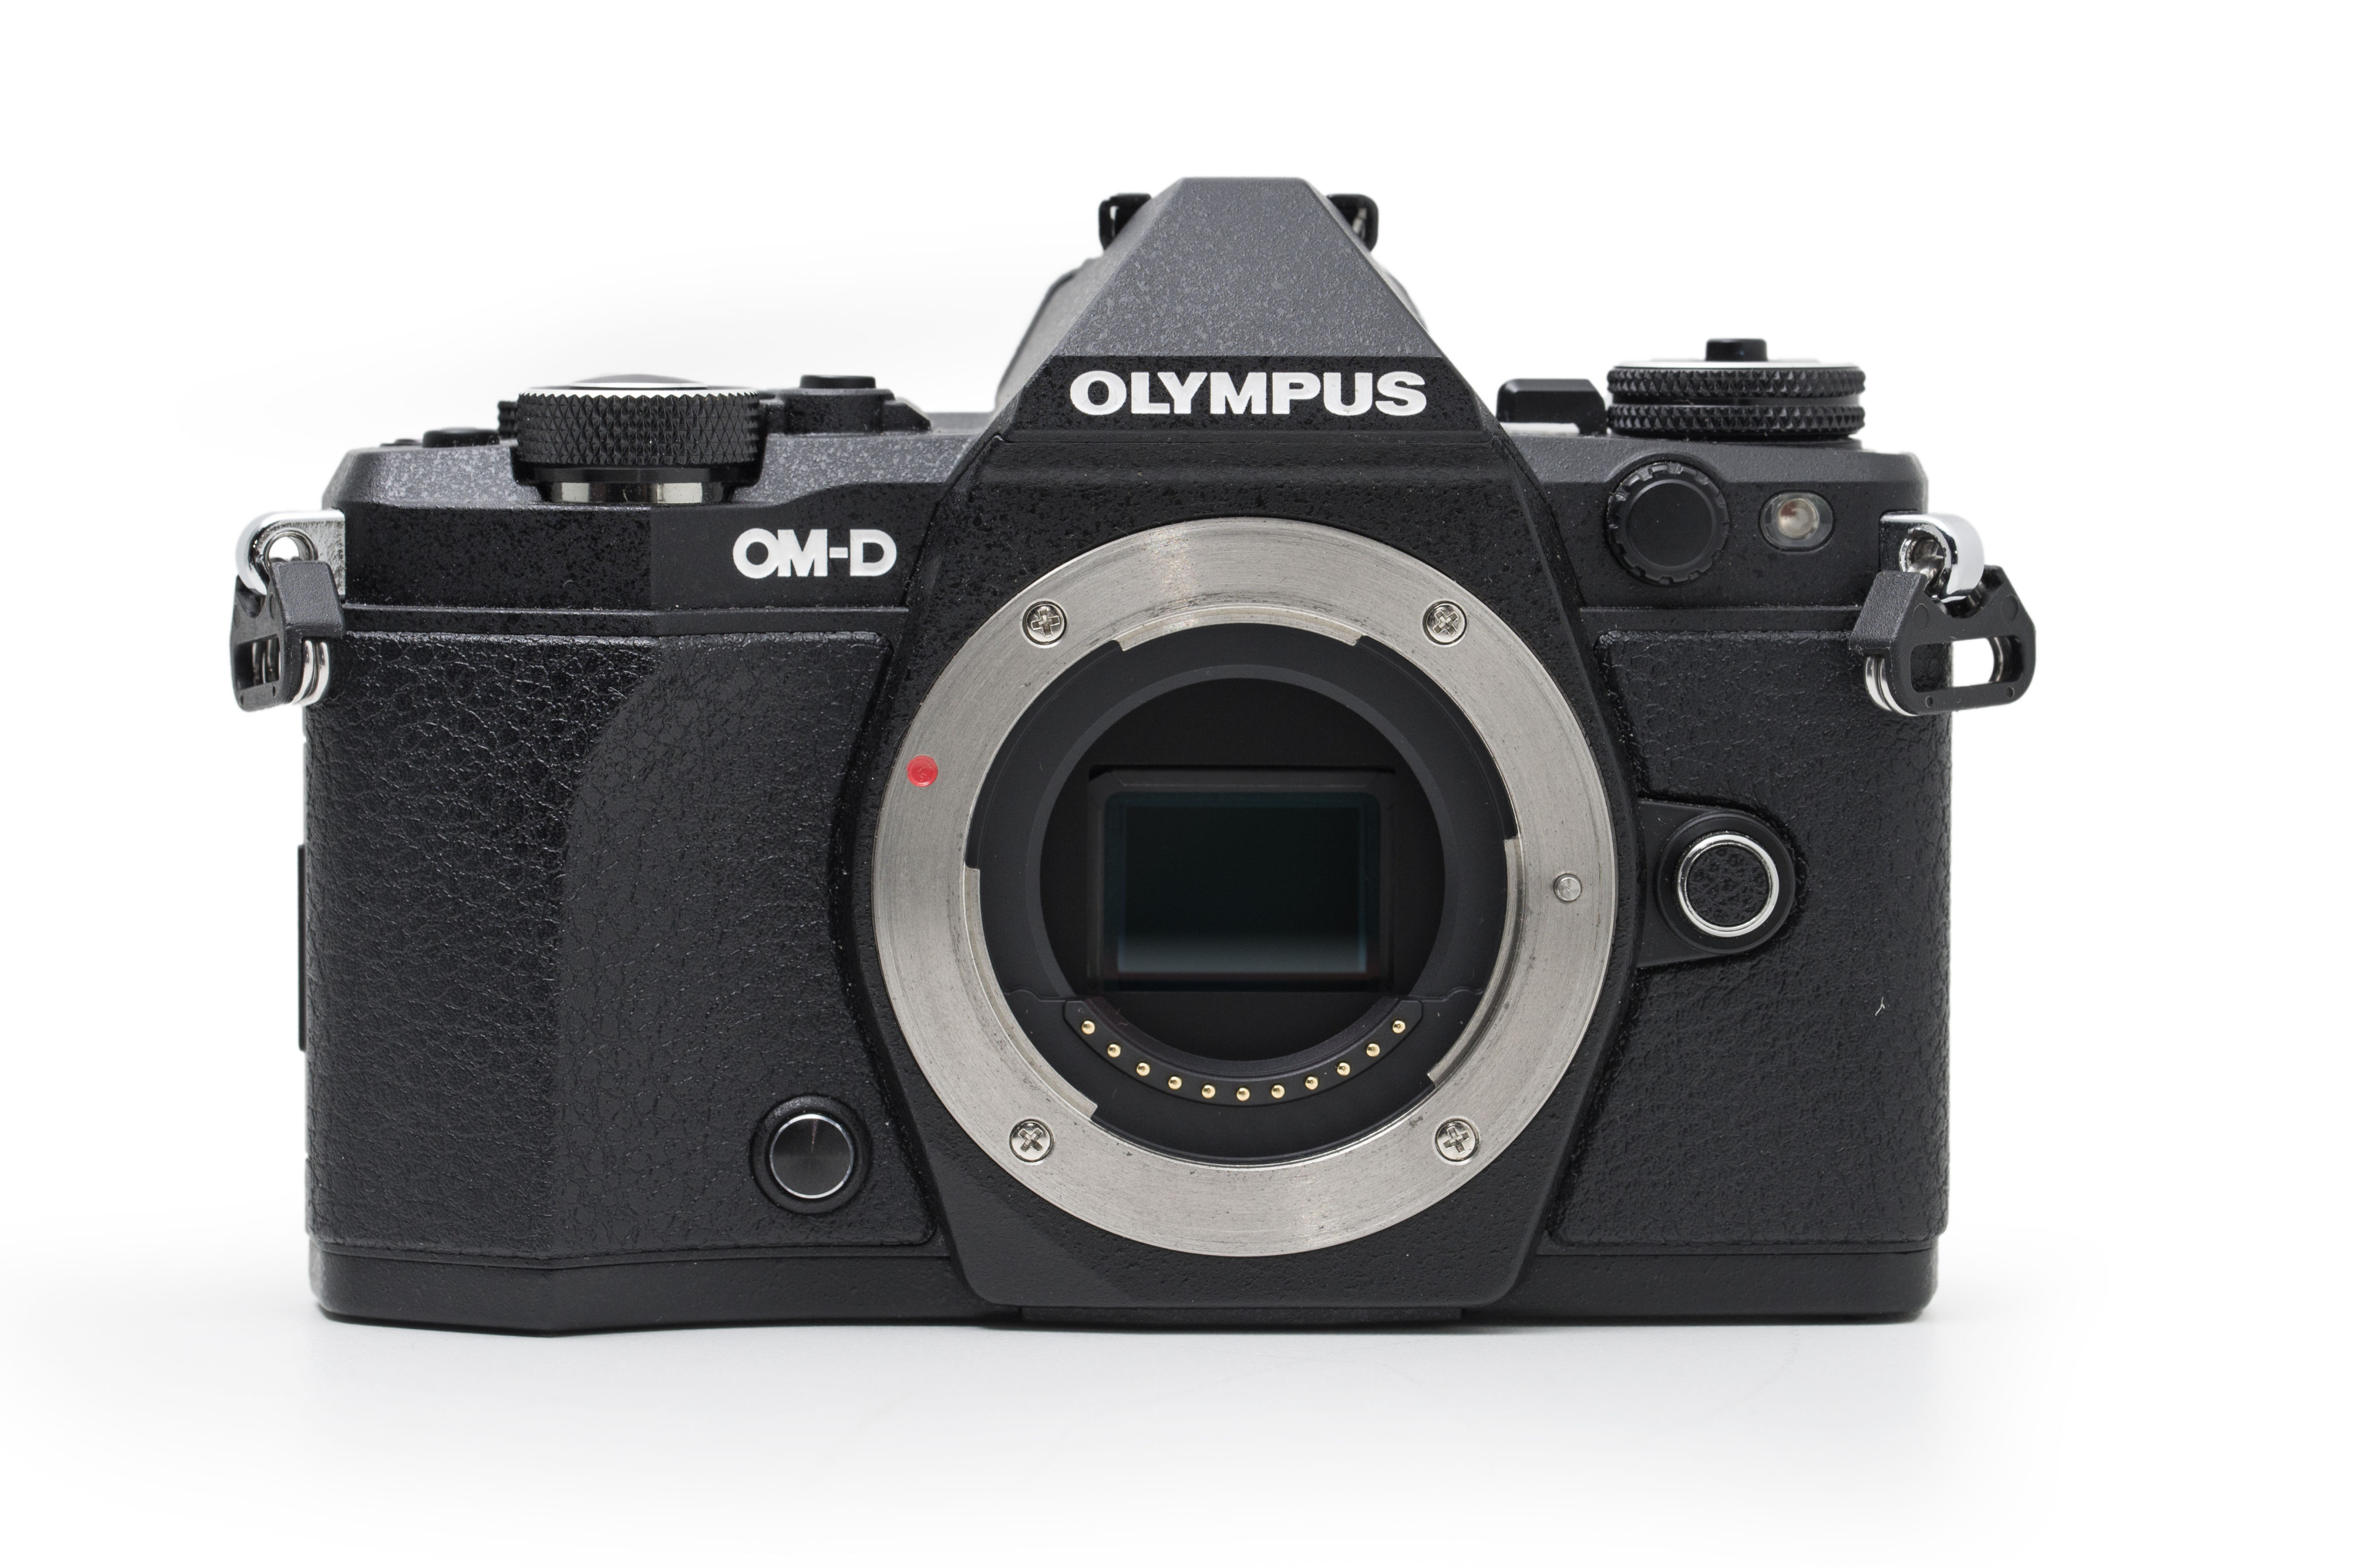 OM heritage: the OM-D E-M5 Mark II is modeled after the looks of the old OM film SLRs